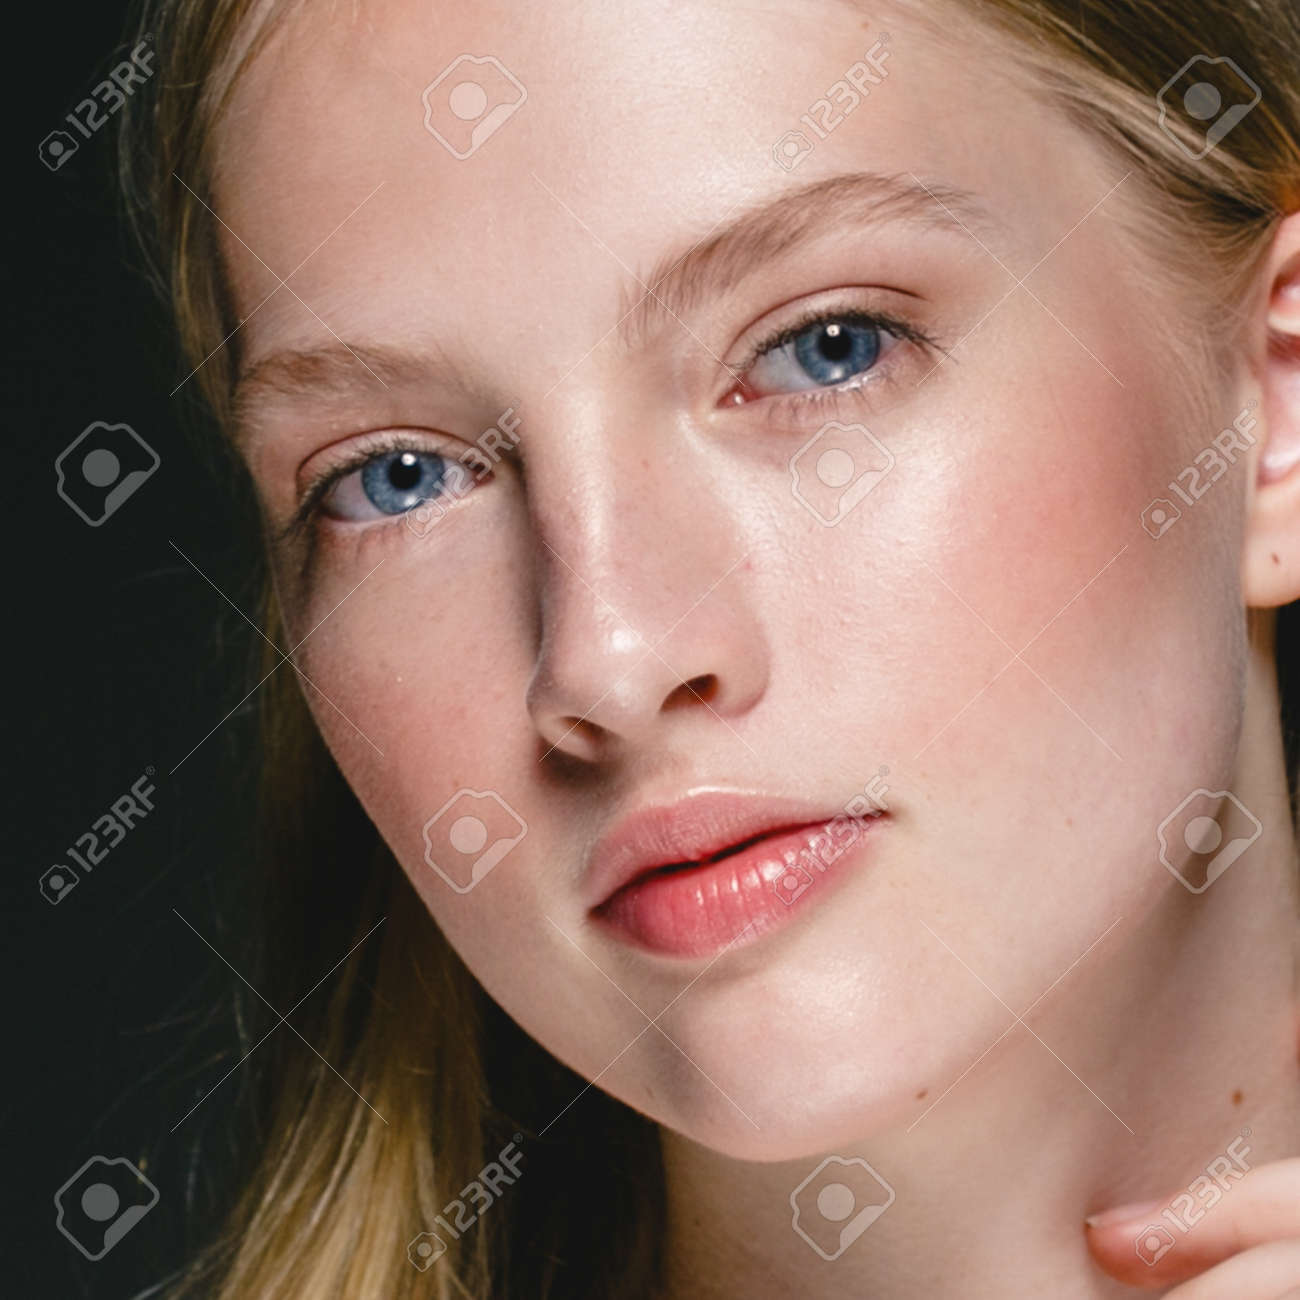 Beautiful Blonde Woman Beauty Model Girl with perfect makeup and hairstyle over black background. - 170272908